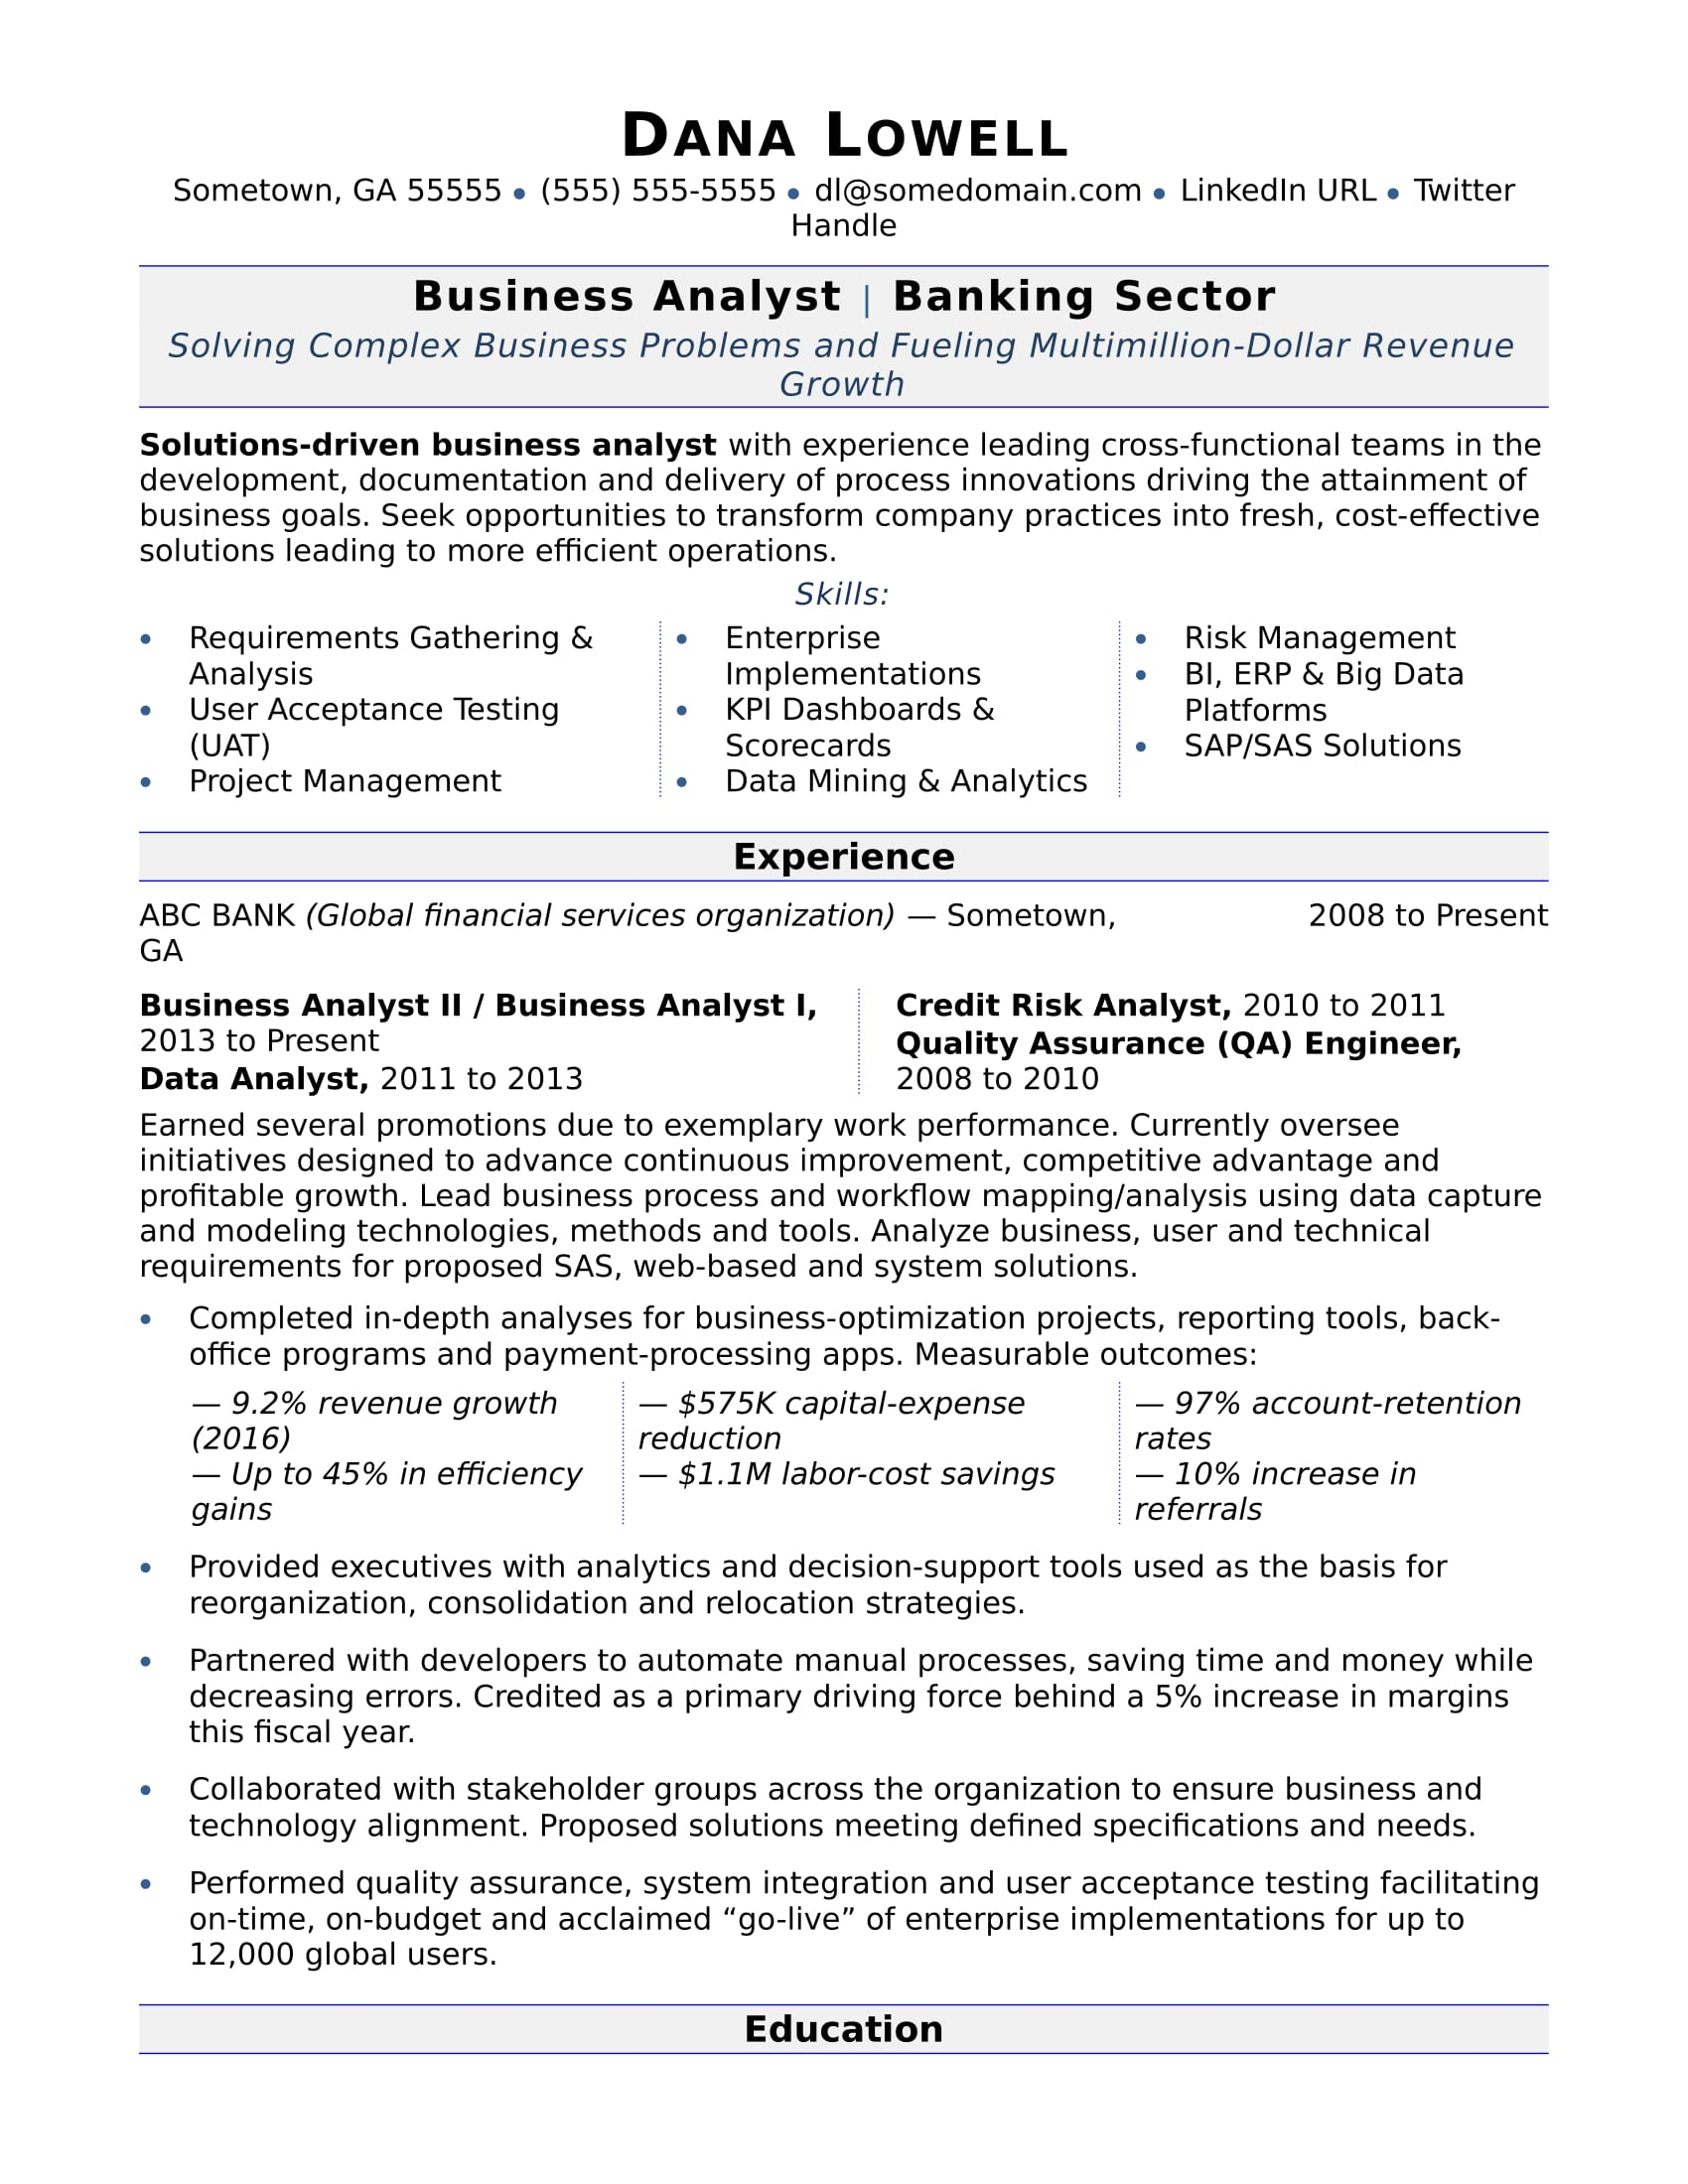 Business Analyst Resume Sample | Monster.com